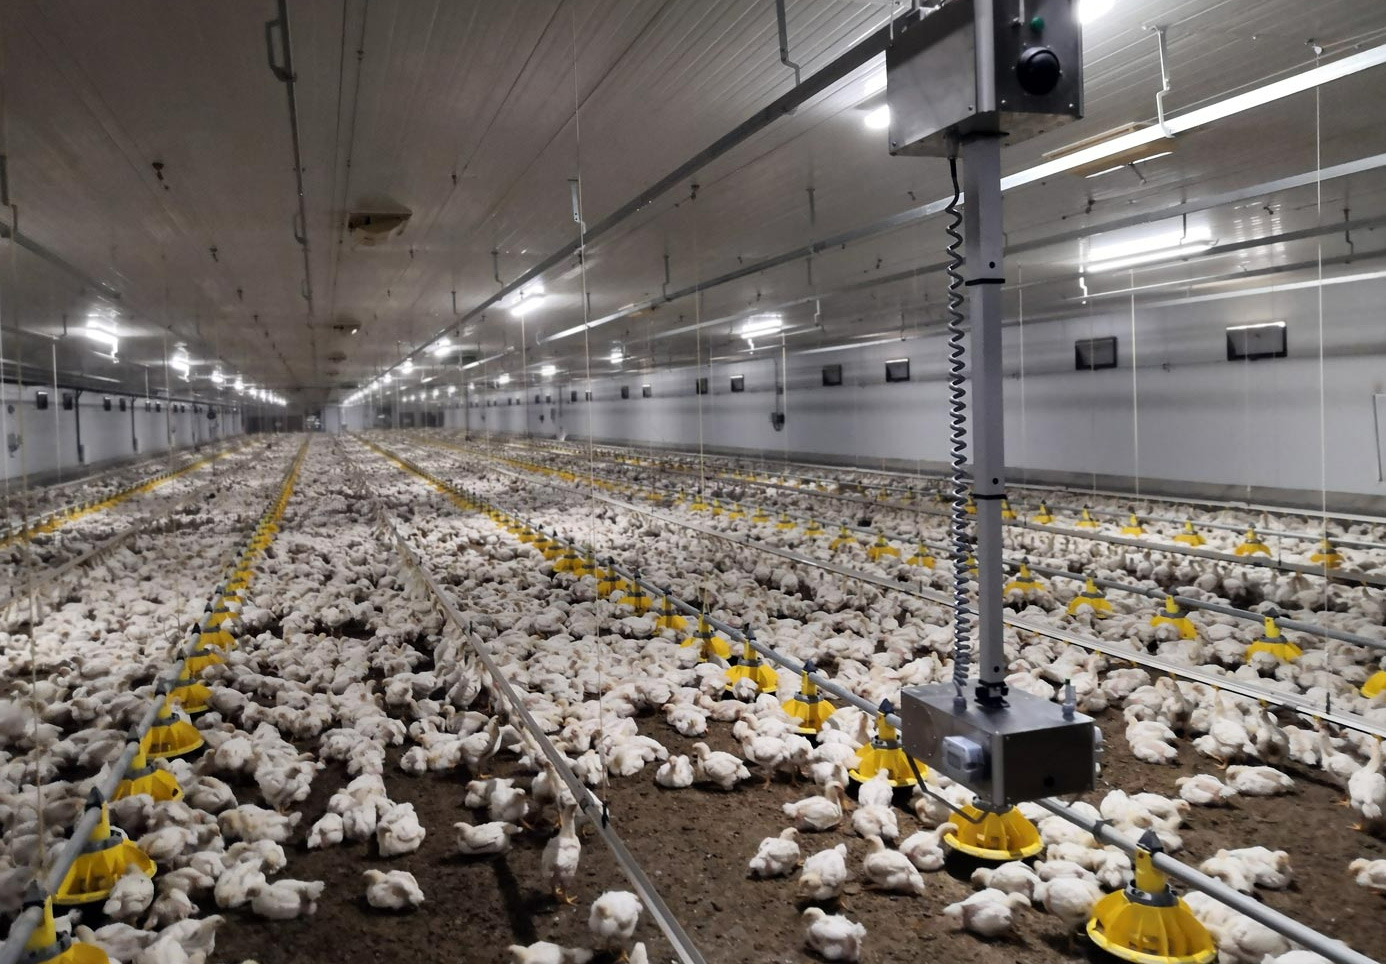 The rail-mounted robot uses a complete set of sensors to measure thermal sensation, air quality, light and sound in poultry housing.